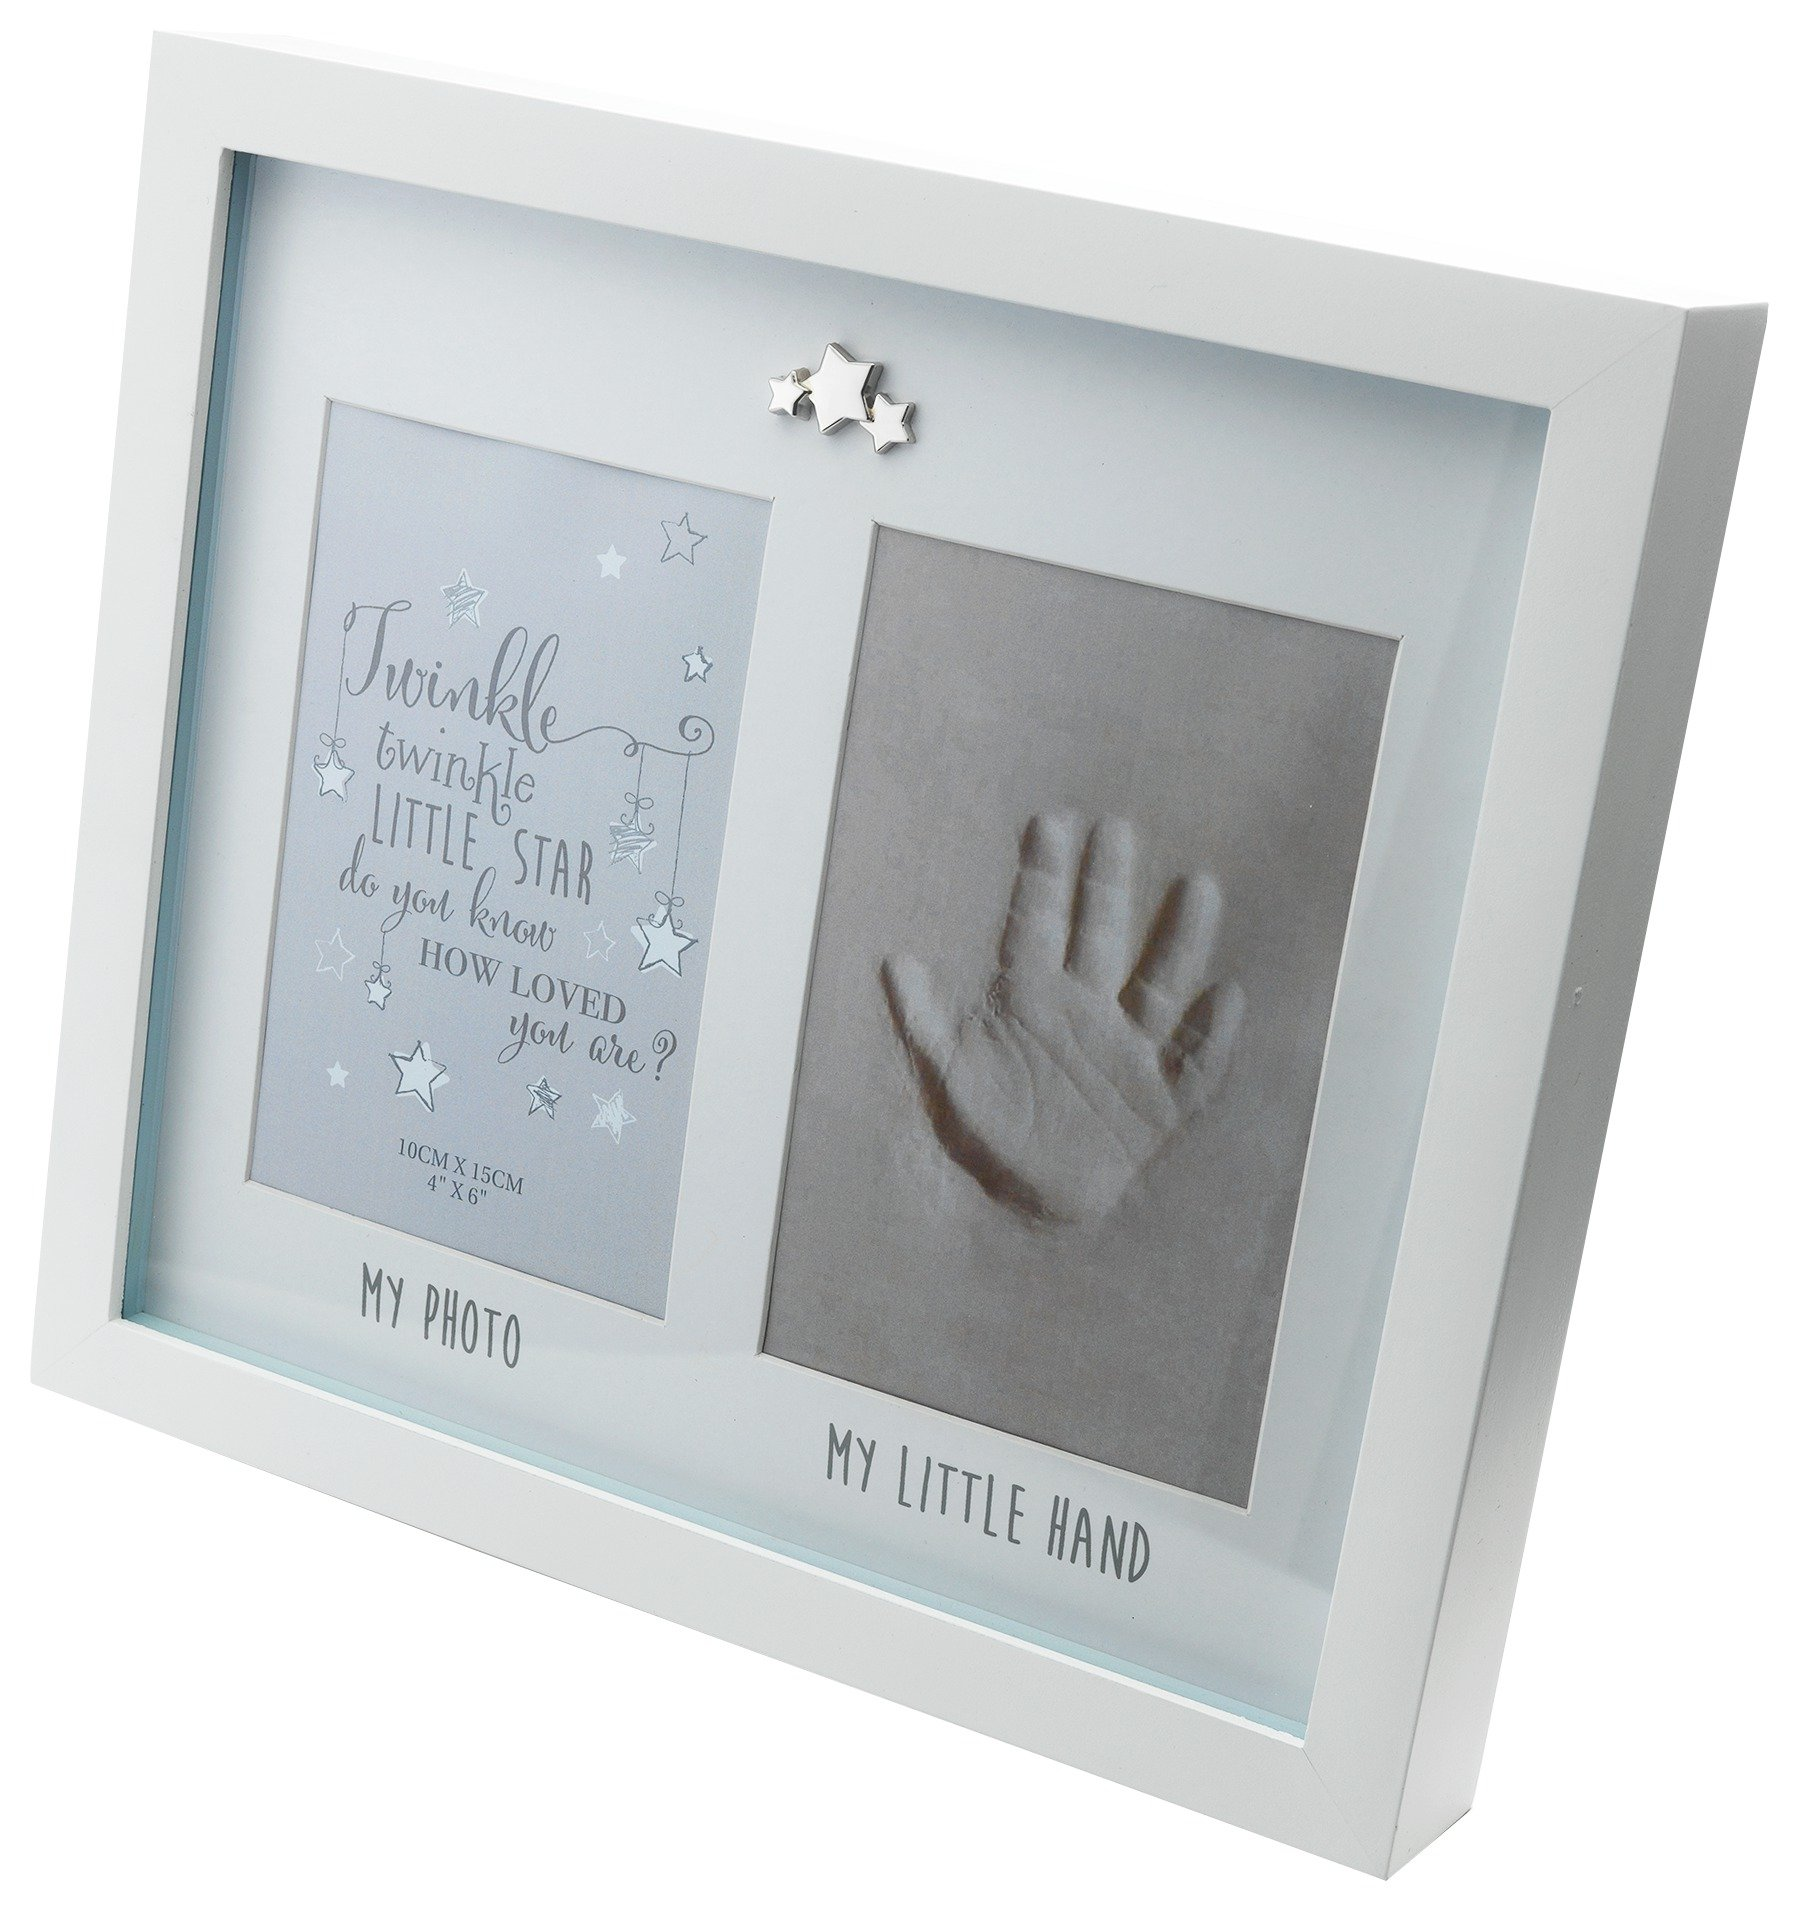 Image of Little Star Photo and Hand Print Frame